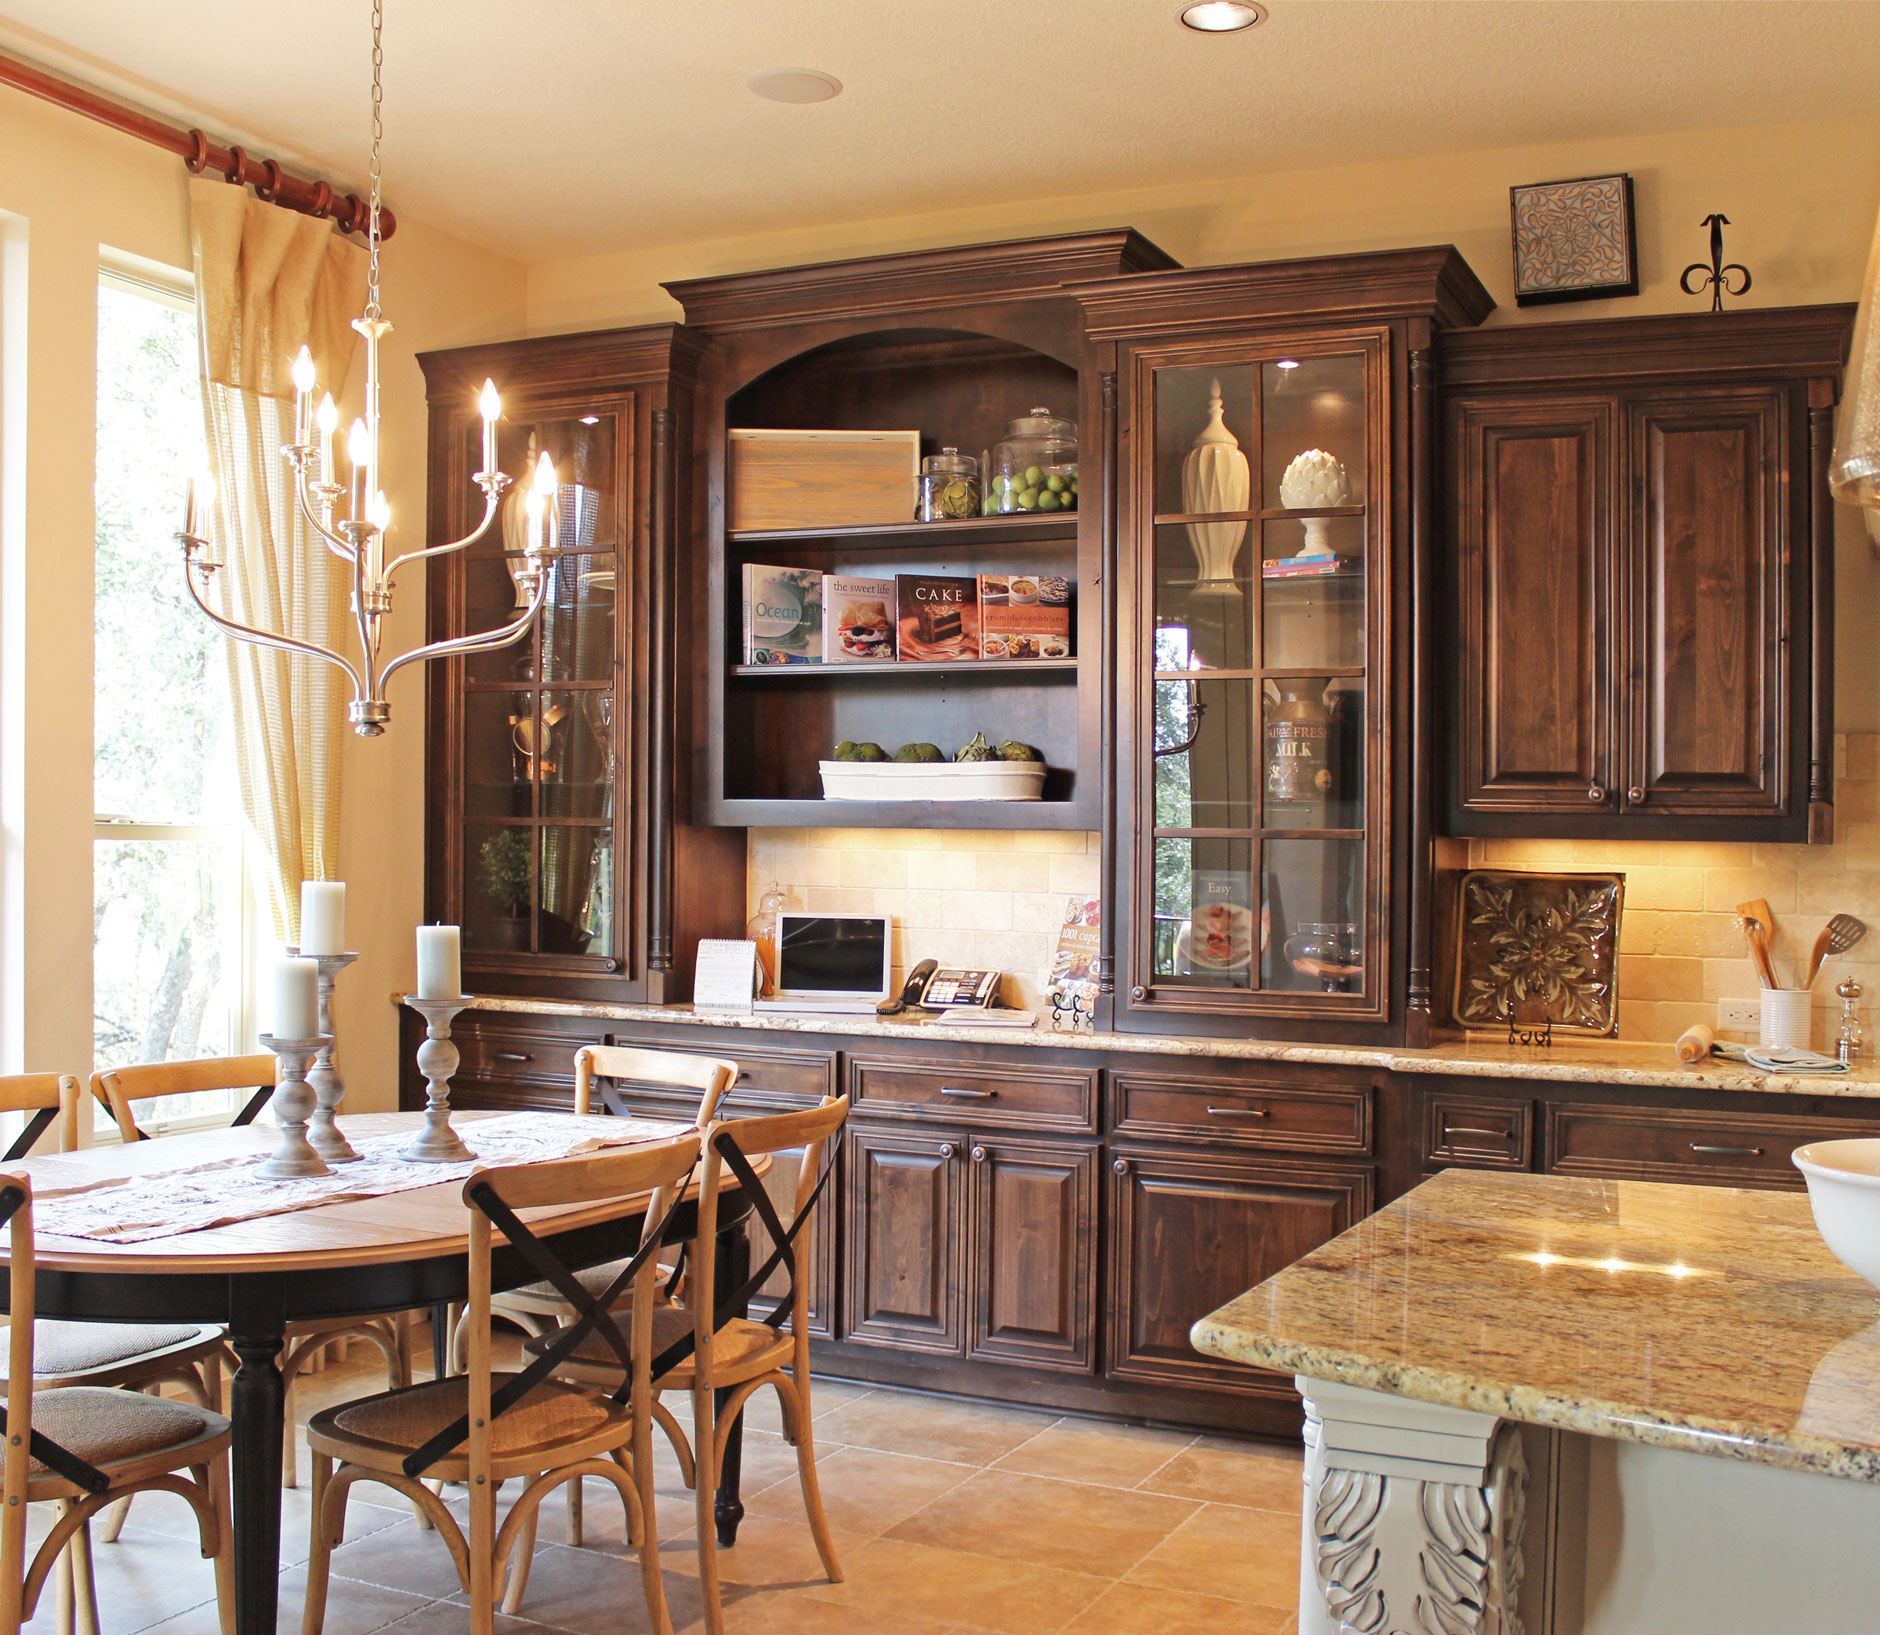 Built-In Hutch and Butler's Pantry Inspiration